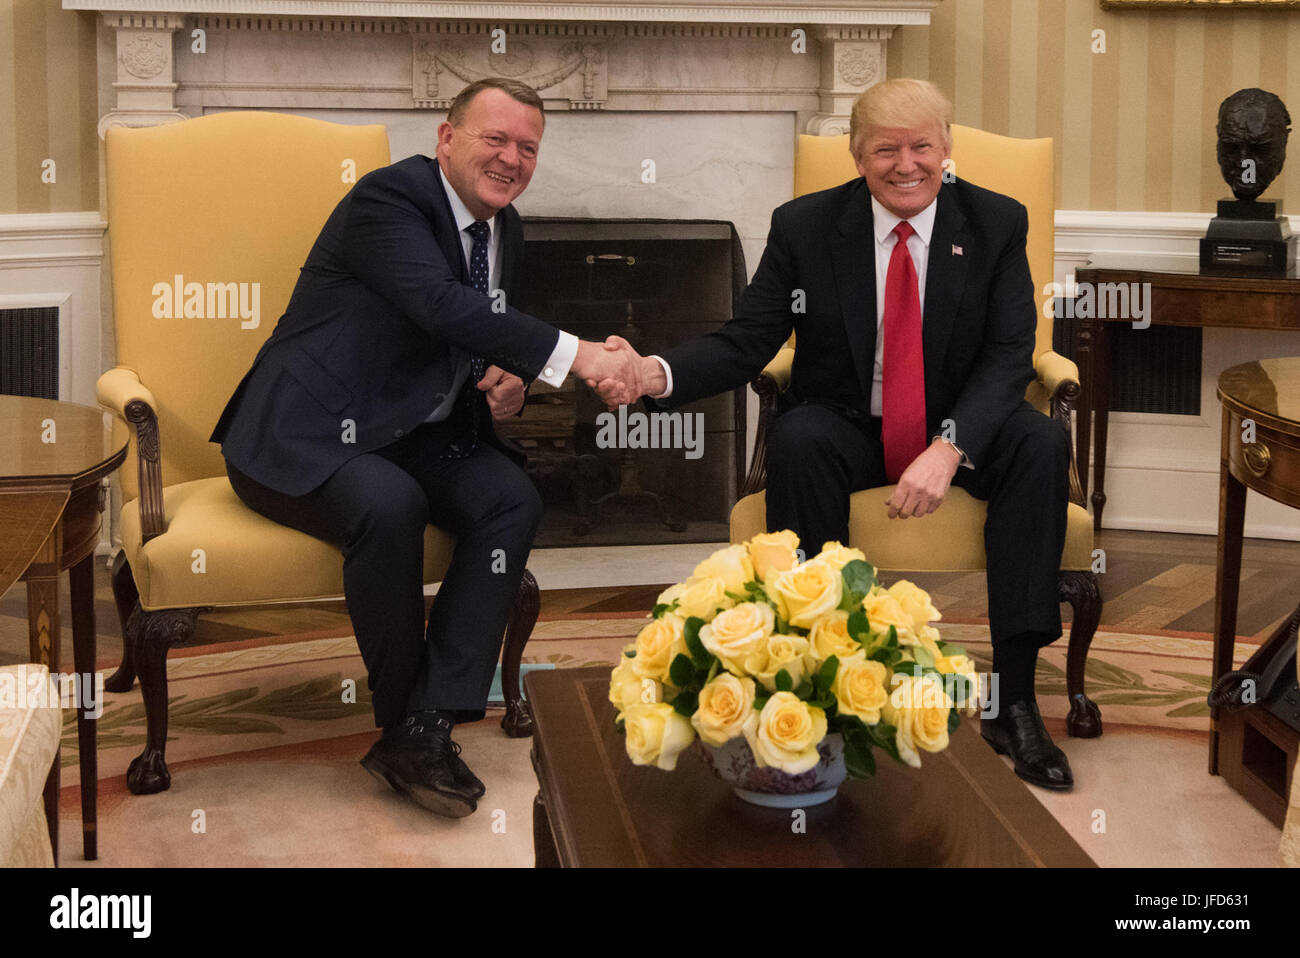 J trump and danish prime minister lars løkke rasmussen shake hands on thursday march 30 2017 during a meeting in the oval office of the white house